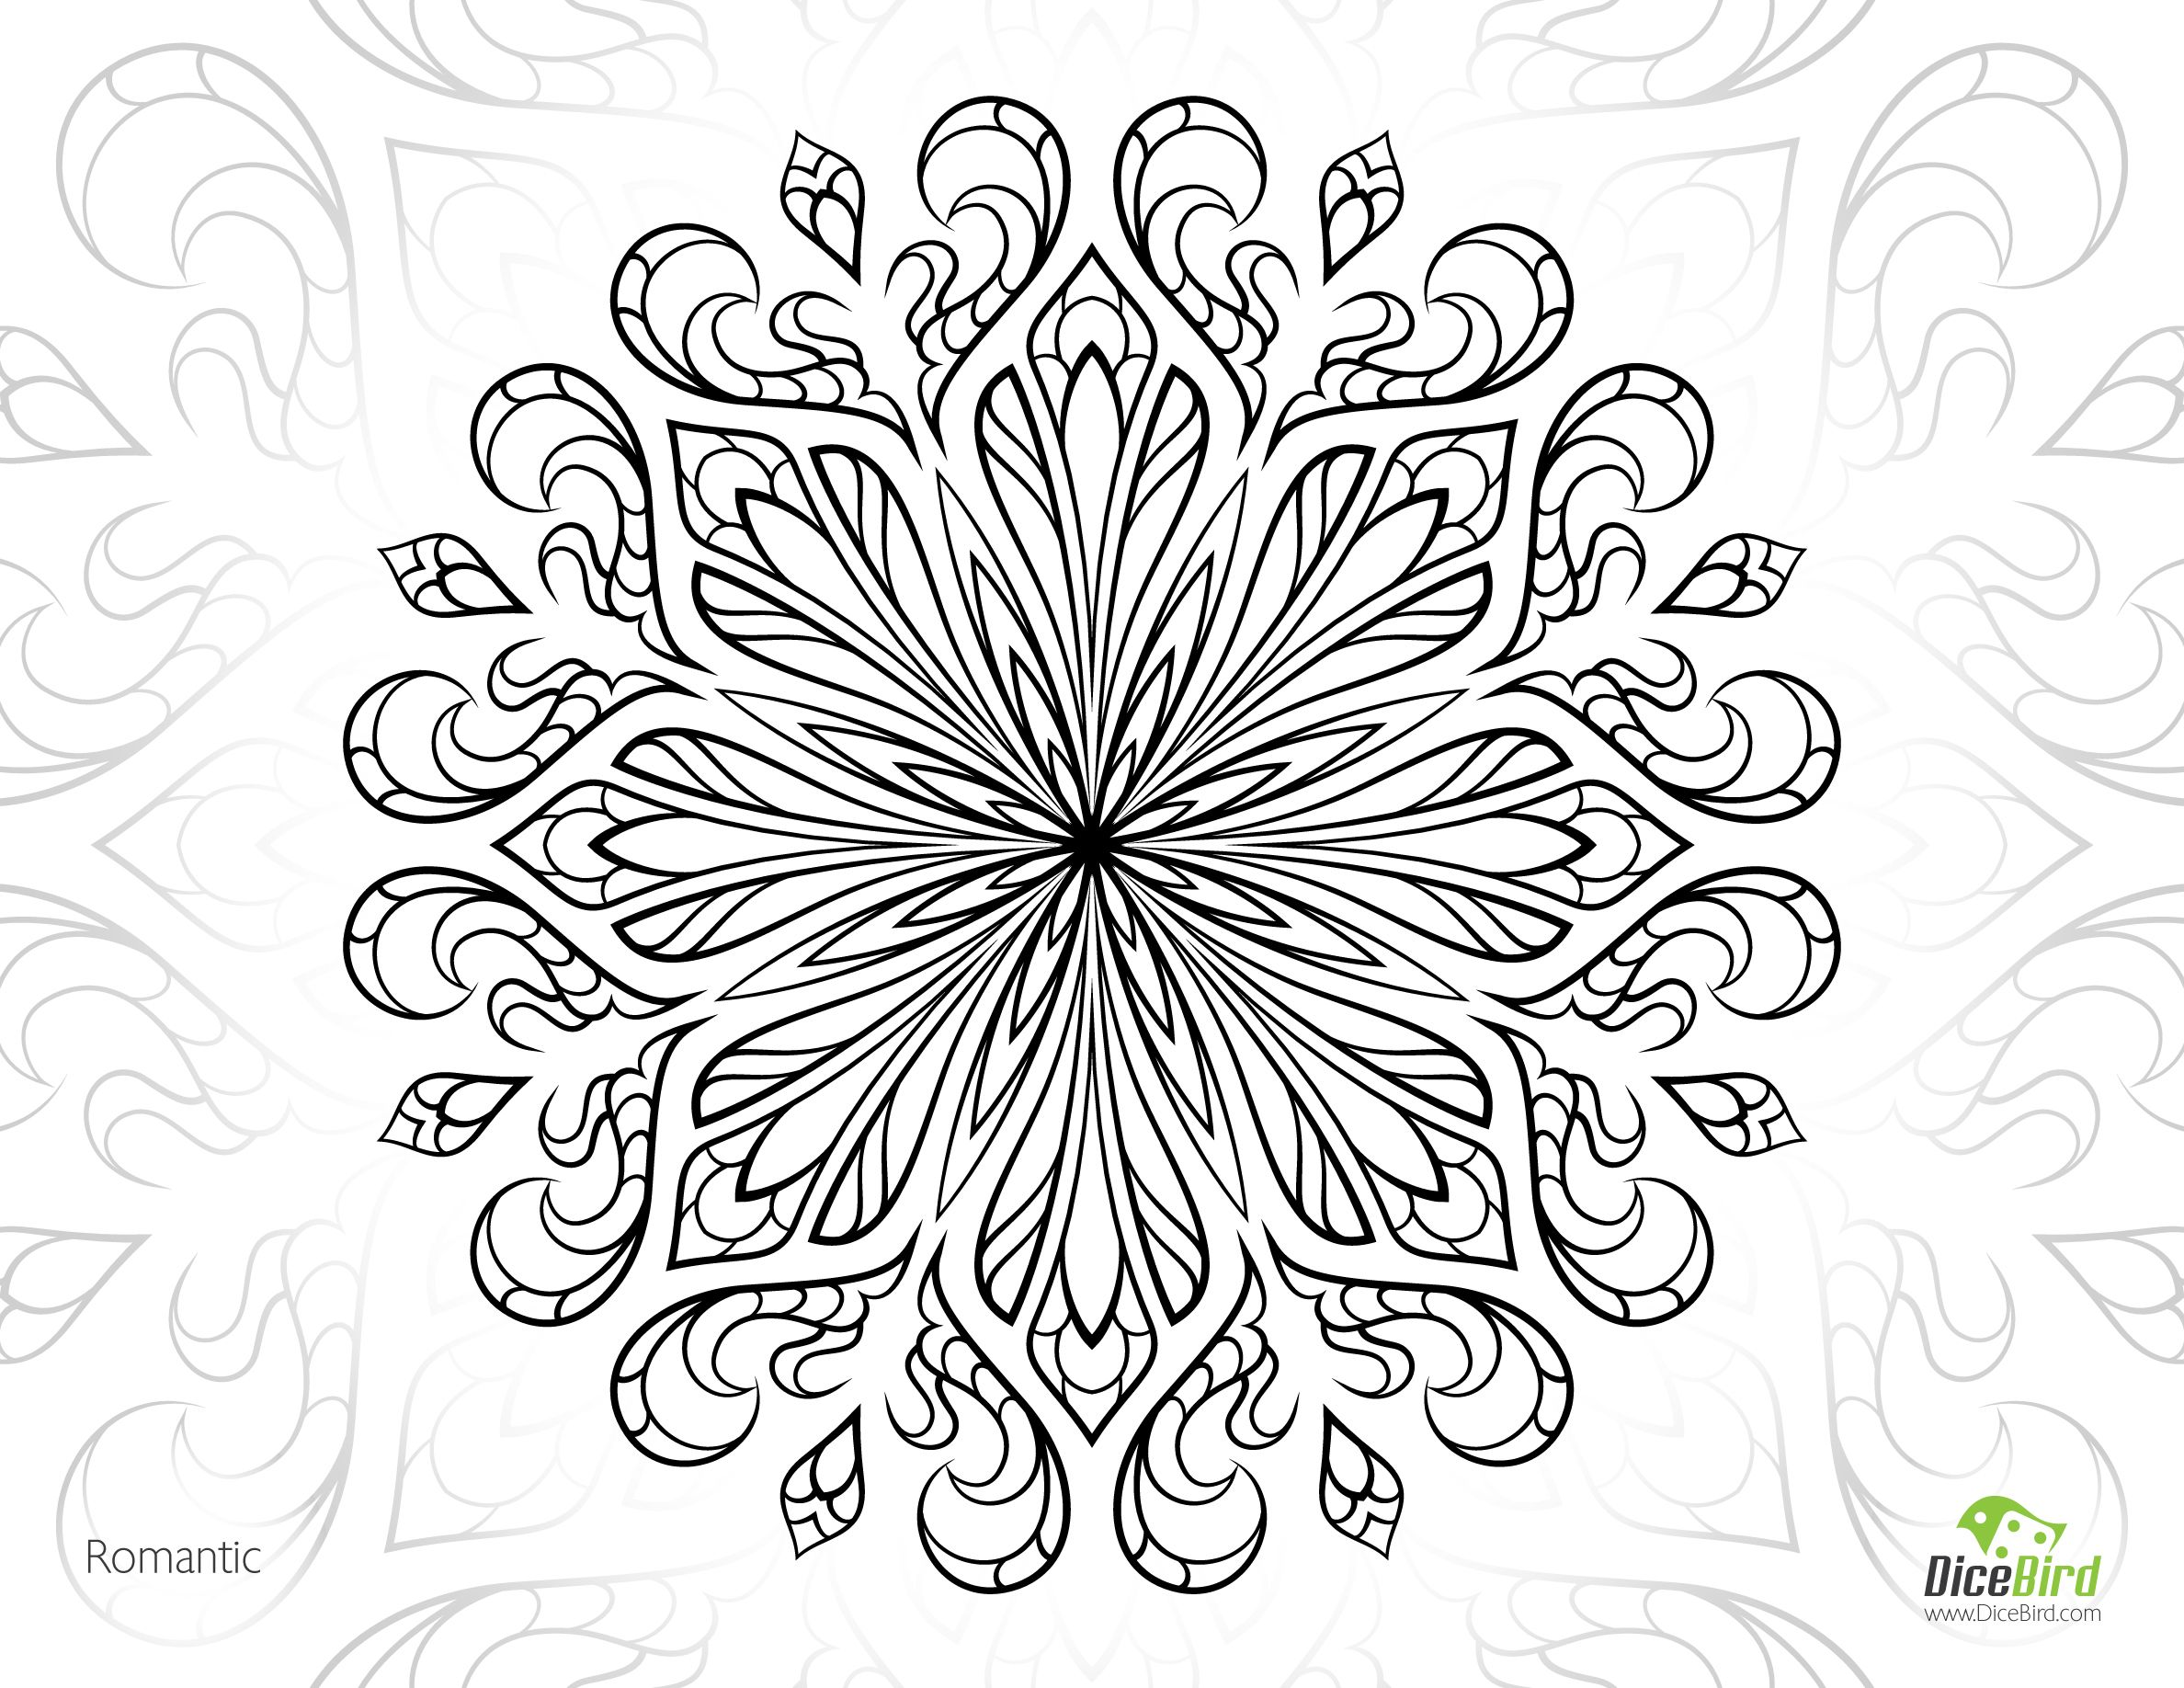 free printable coloring pages for adults advanced romantic flower - Free Printable Coloring Pages For Adults Advanced